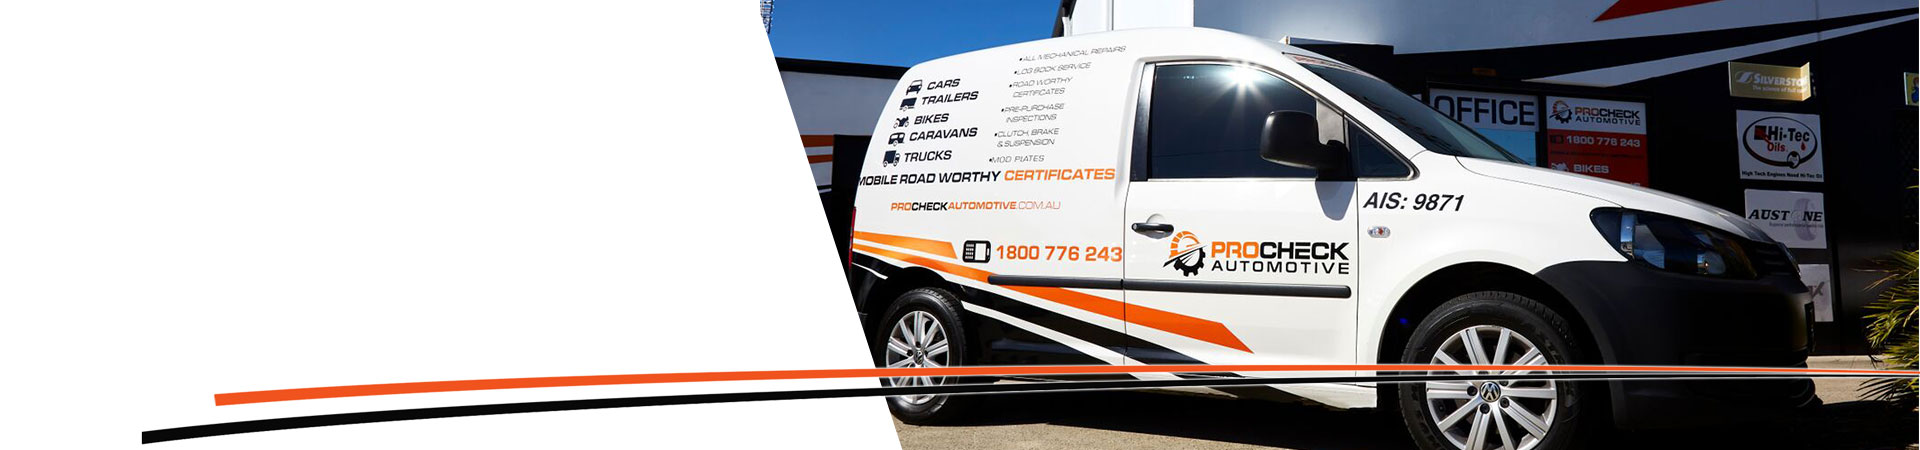 Mobile Servicing - Procheck Automotive